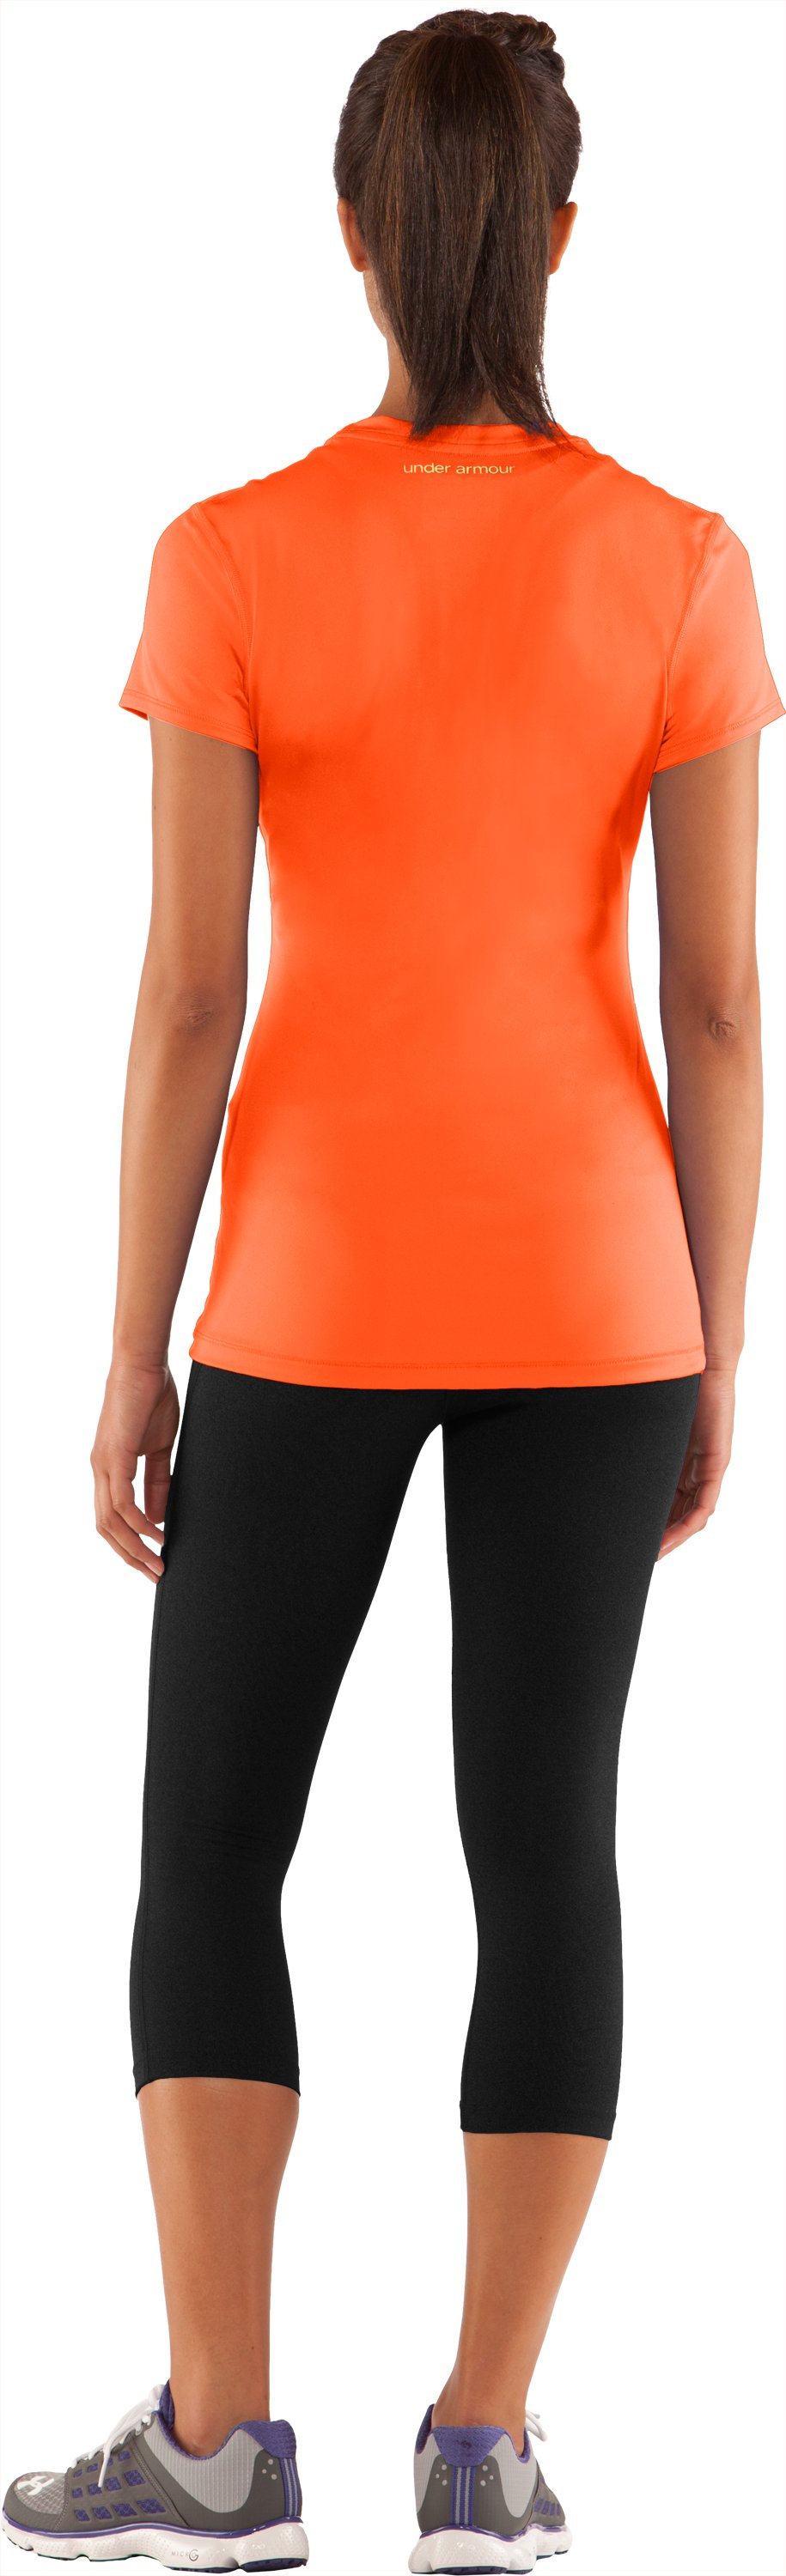 Women's HeatGear® Sonic Short Sleeve, Fire, Back